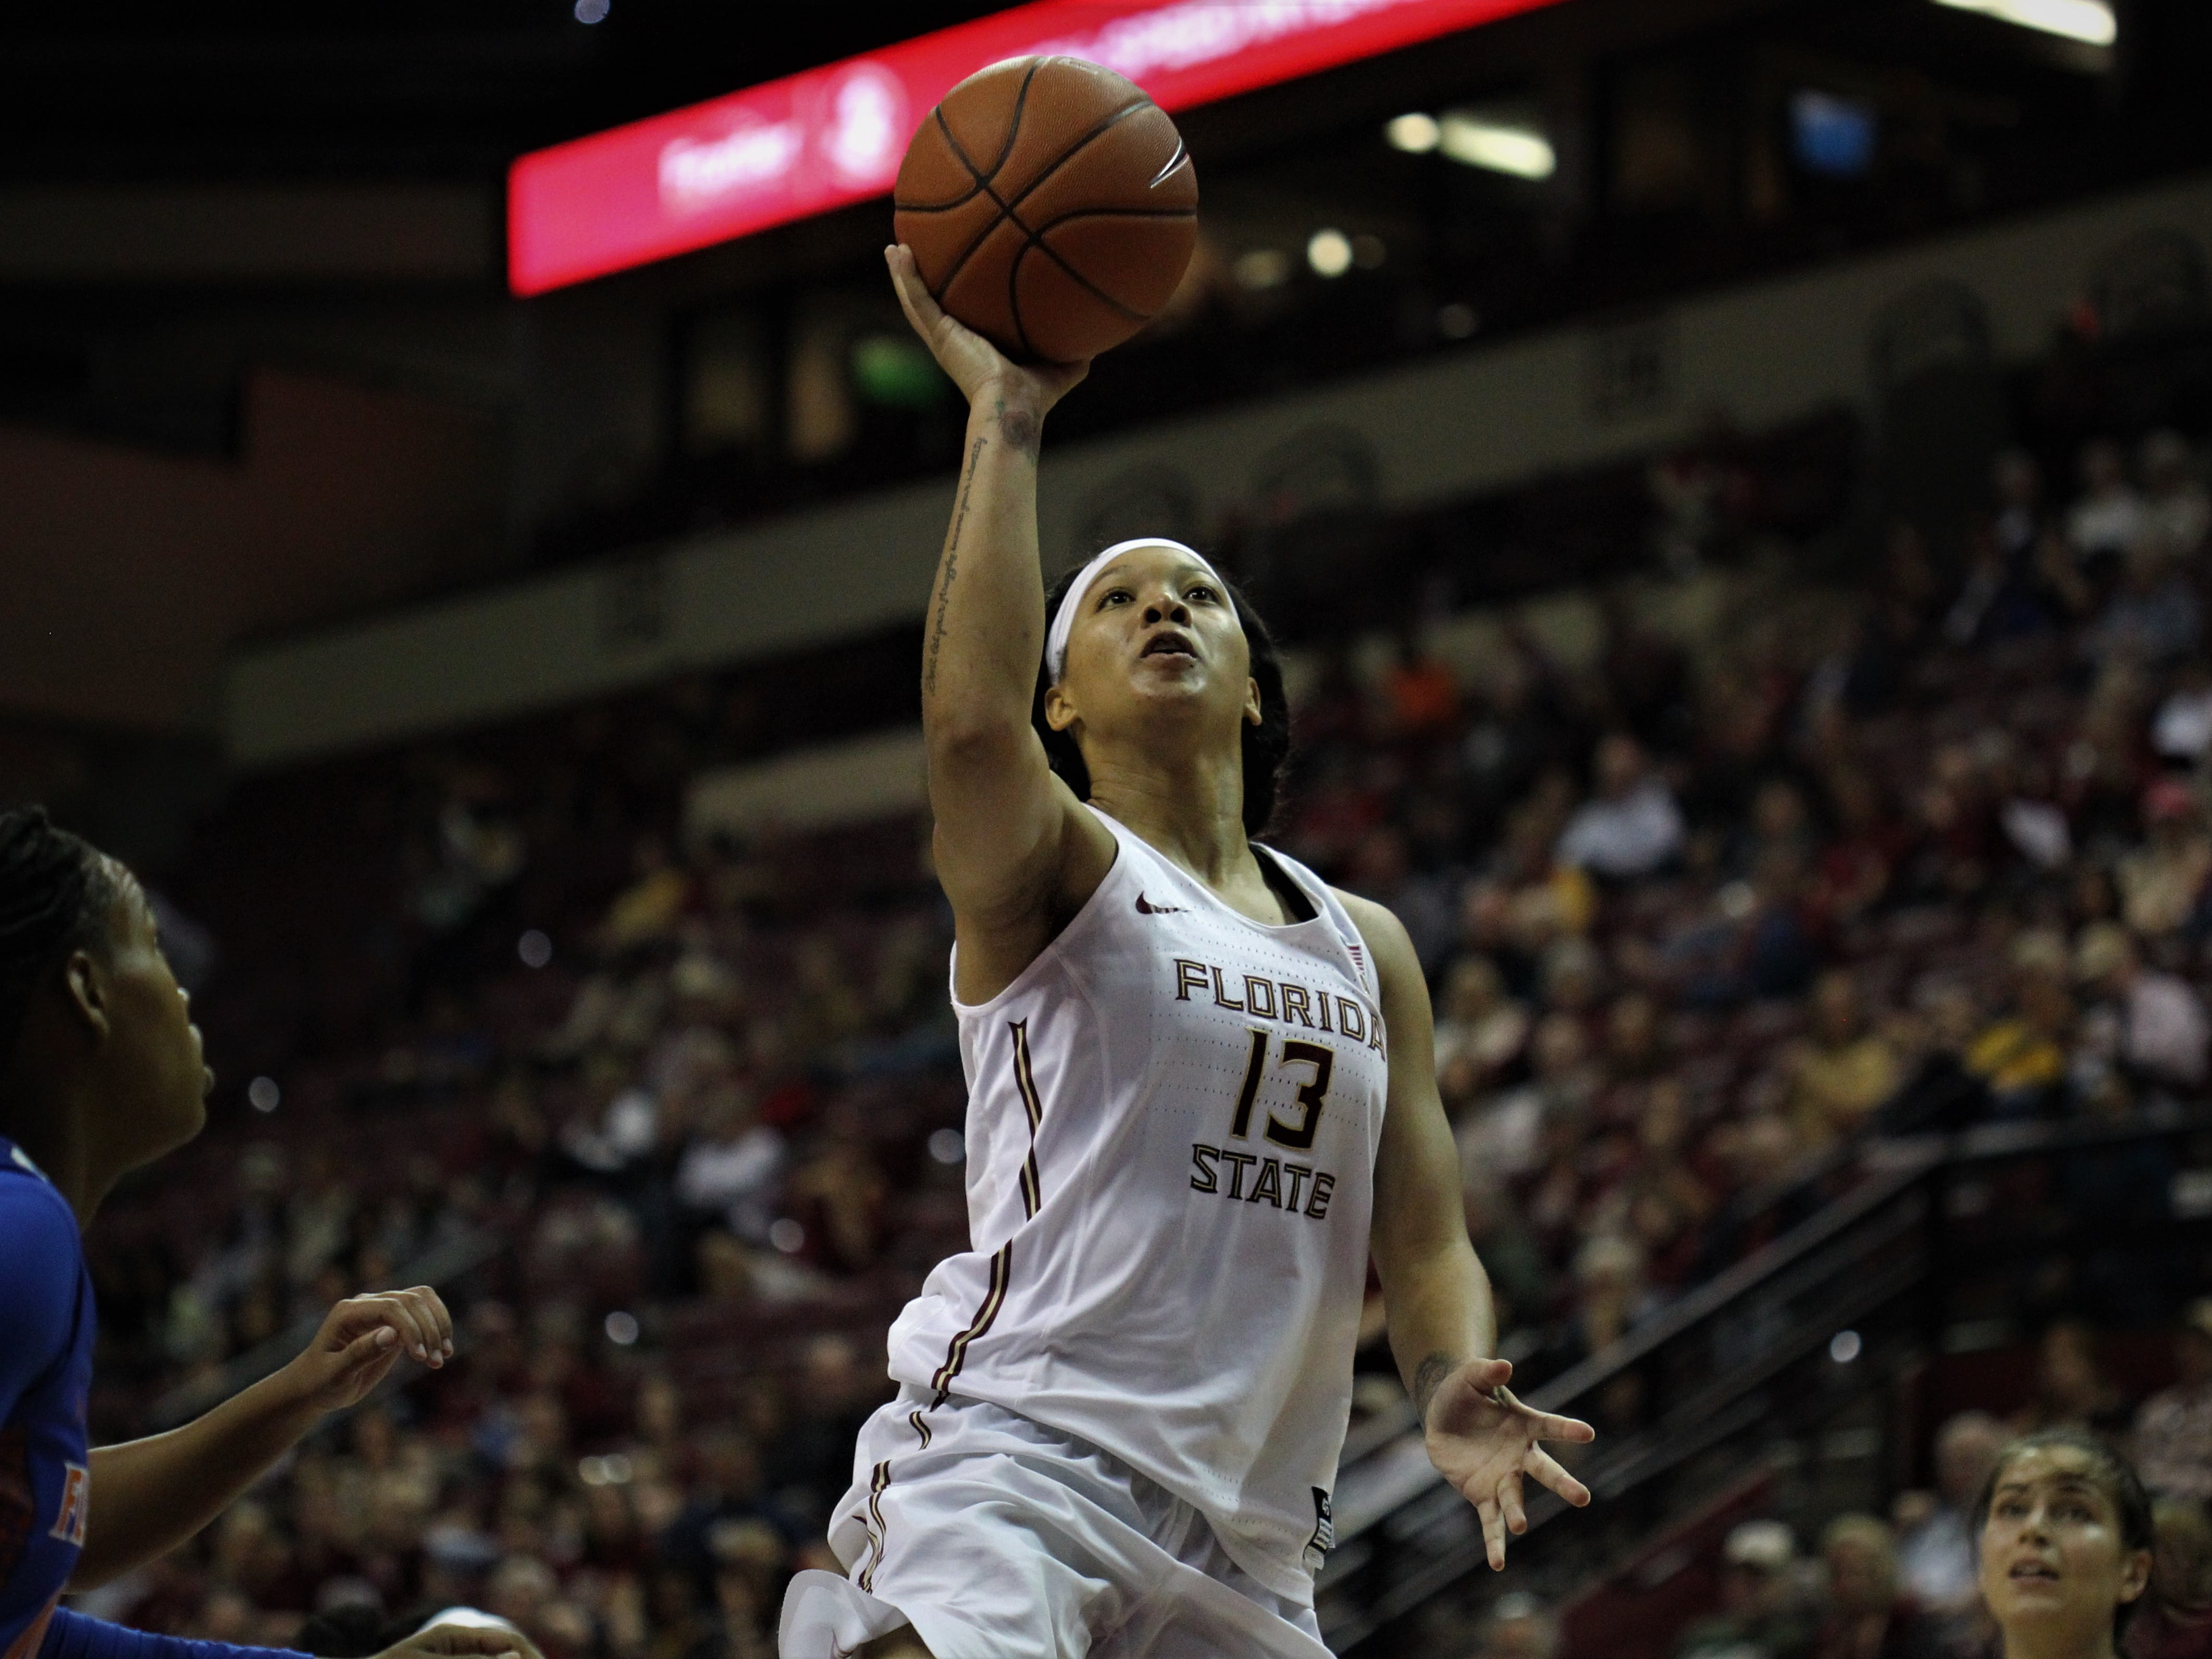 Florida State's Nausia Woolfolk goes up for a layup during the first half of the Seminoles' game against Florida at the Tucker Civic Center on Nov. 11, 2018.